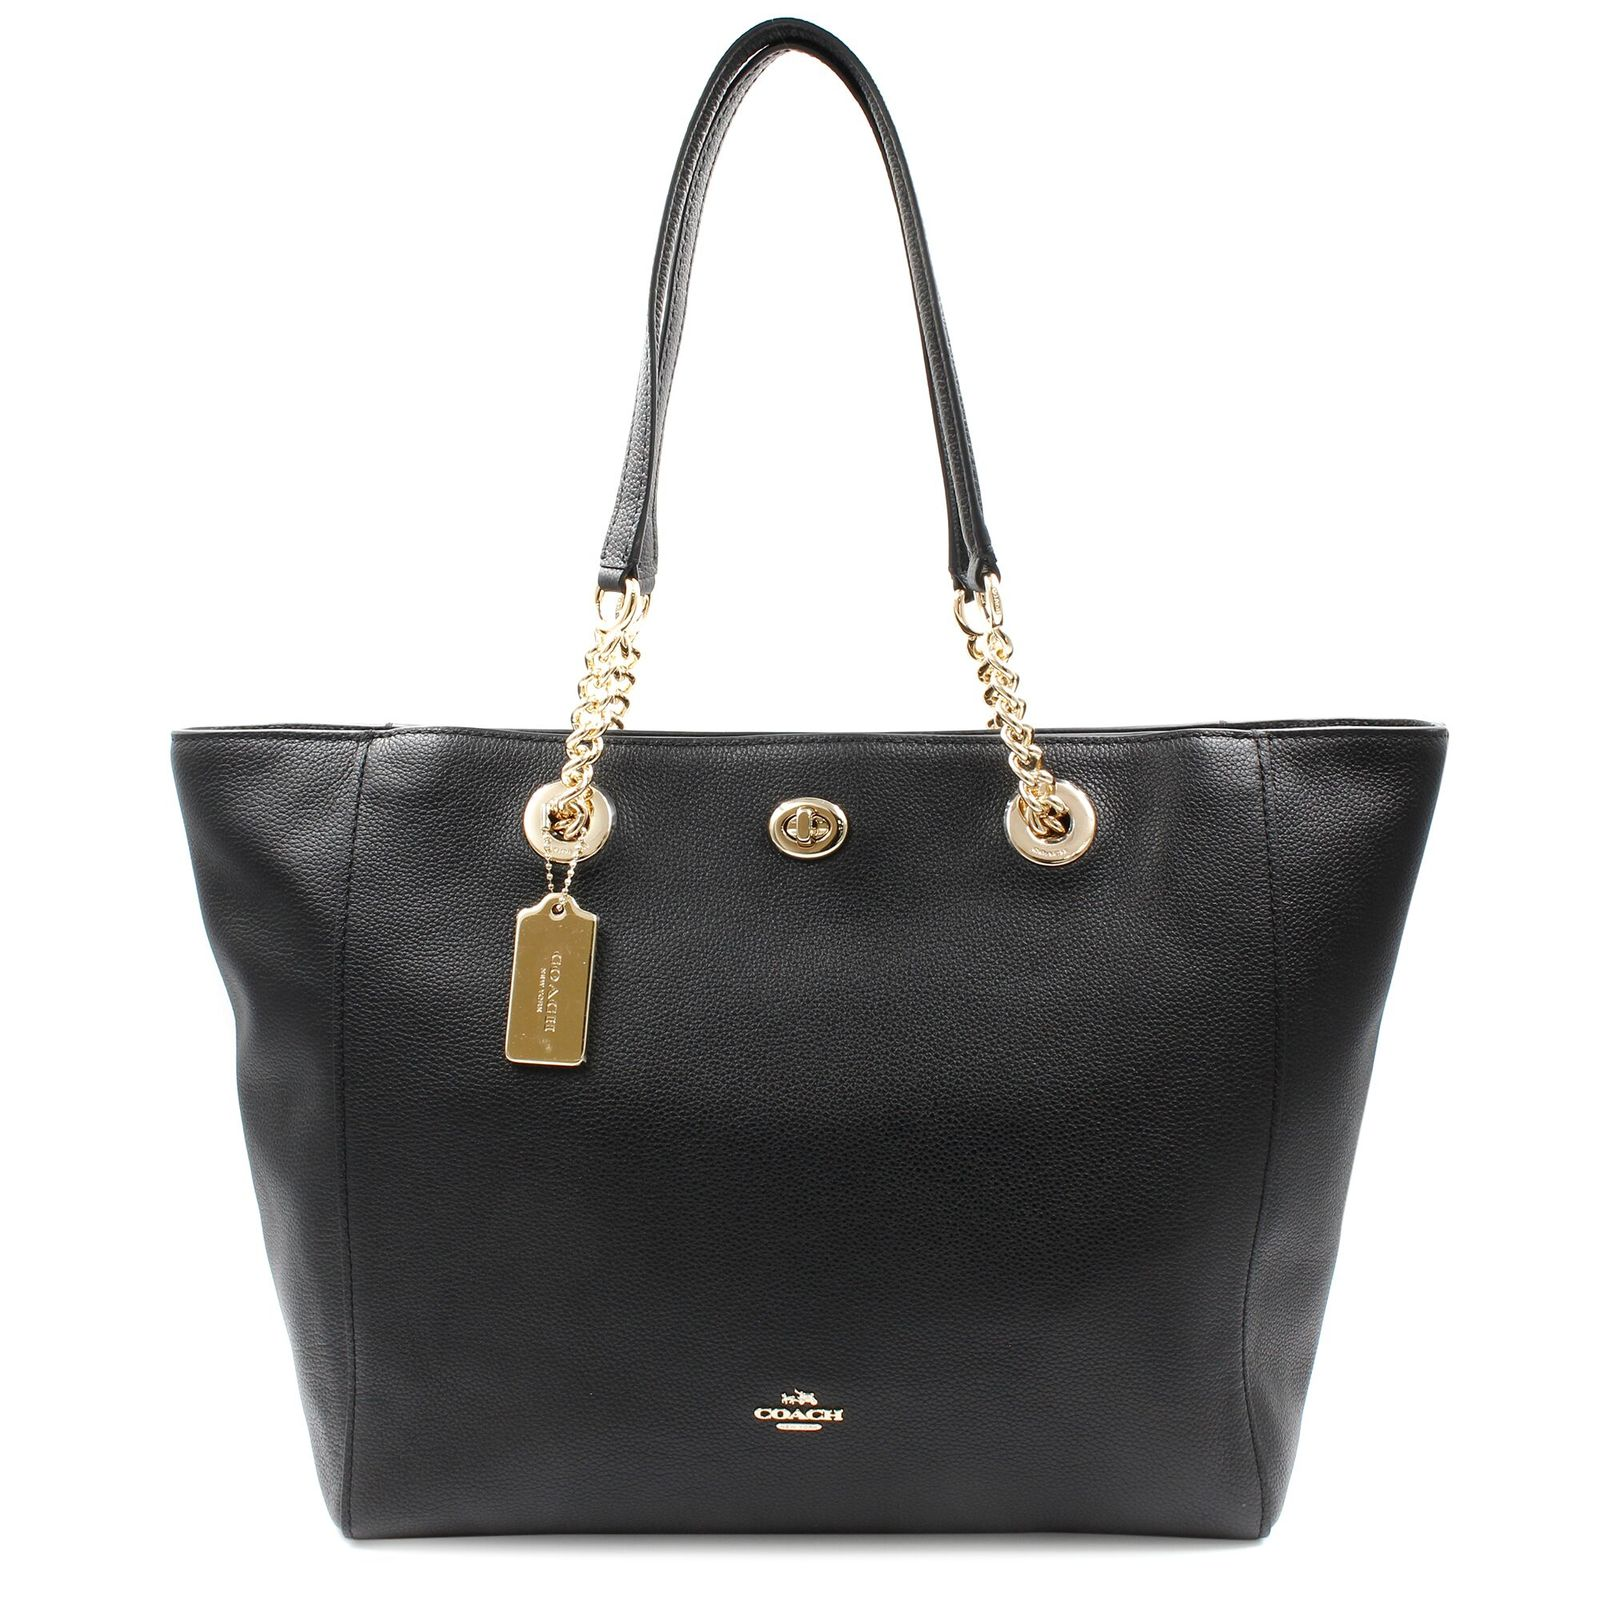 Primary image for Coach Pebbled Turnlock Chain Black Leather Tote Womens Bag 56830